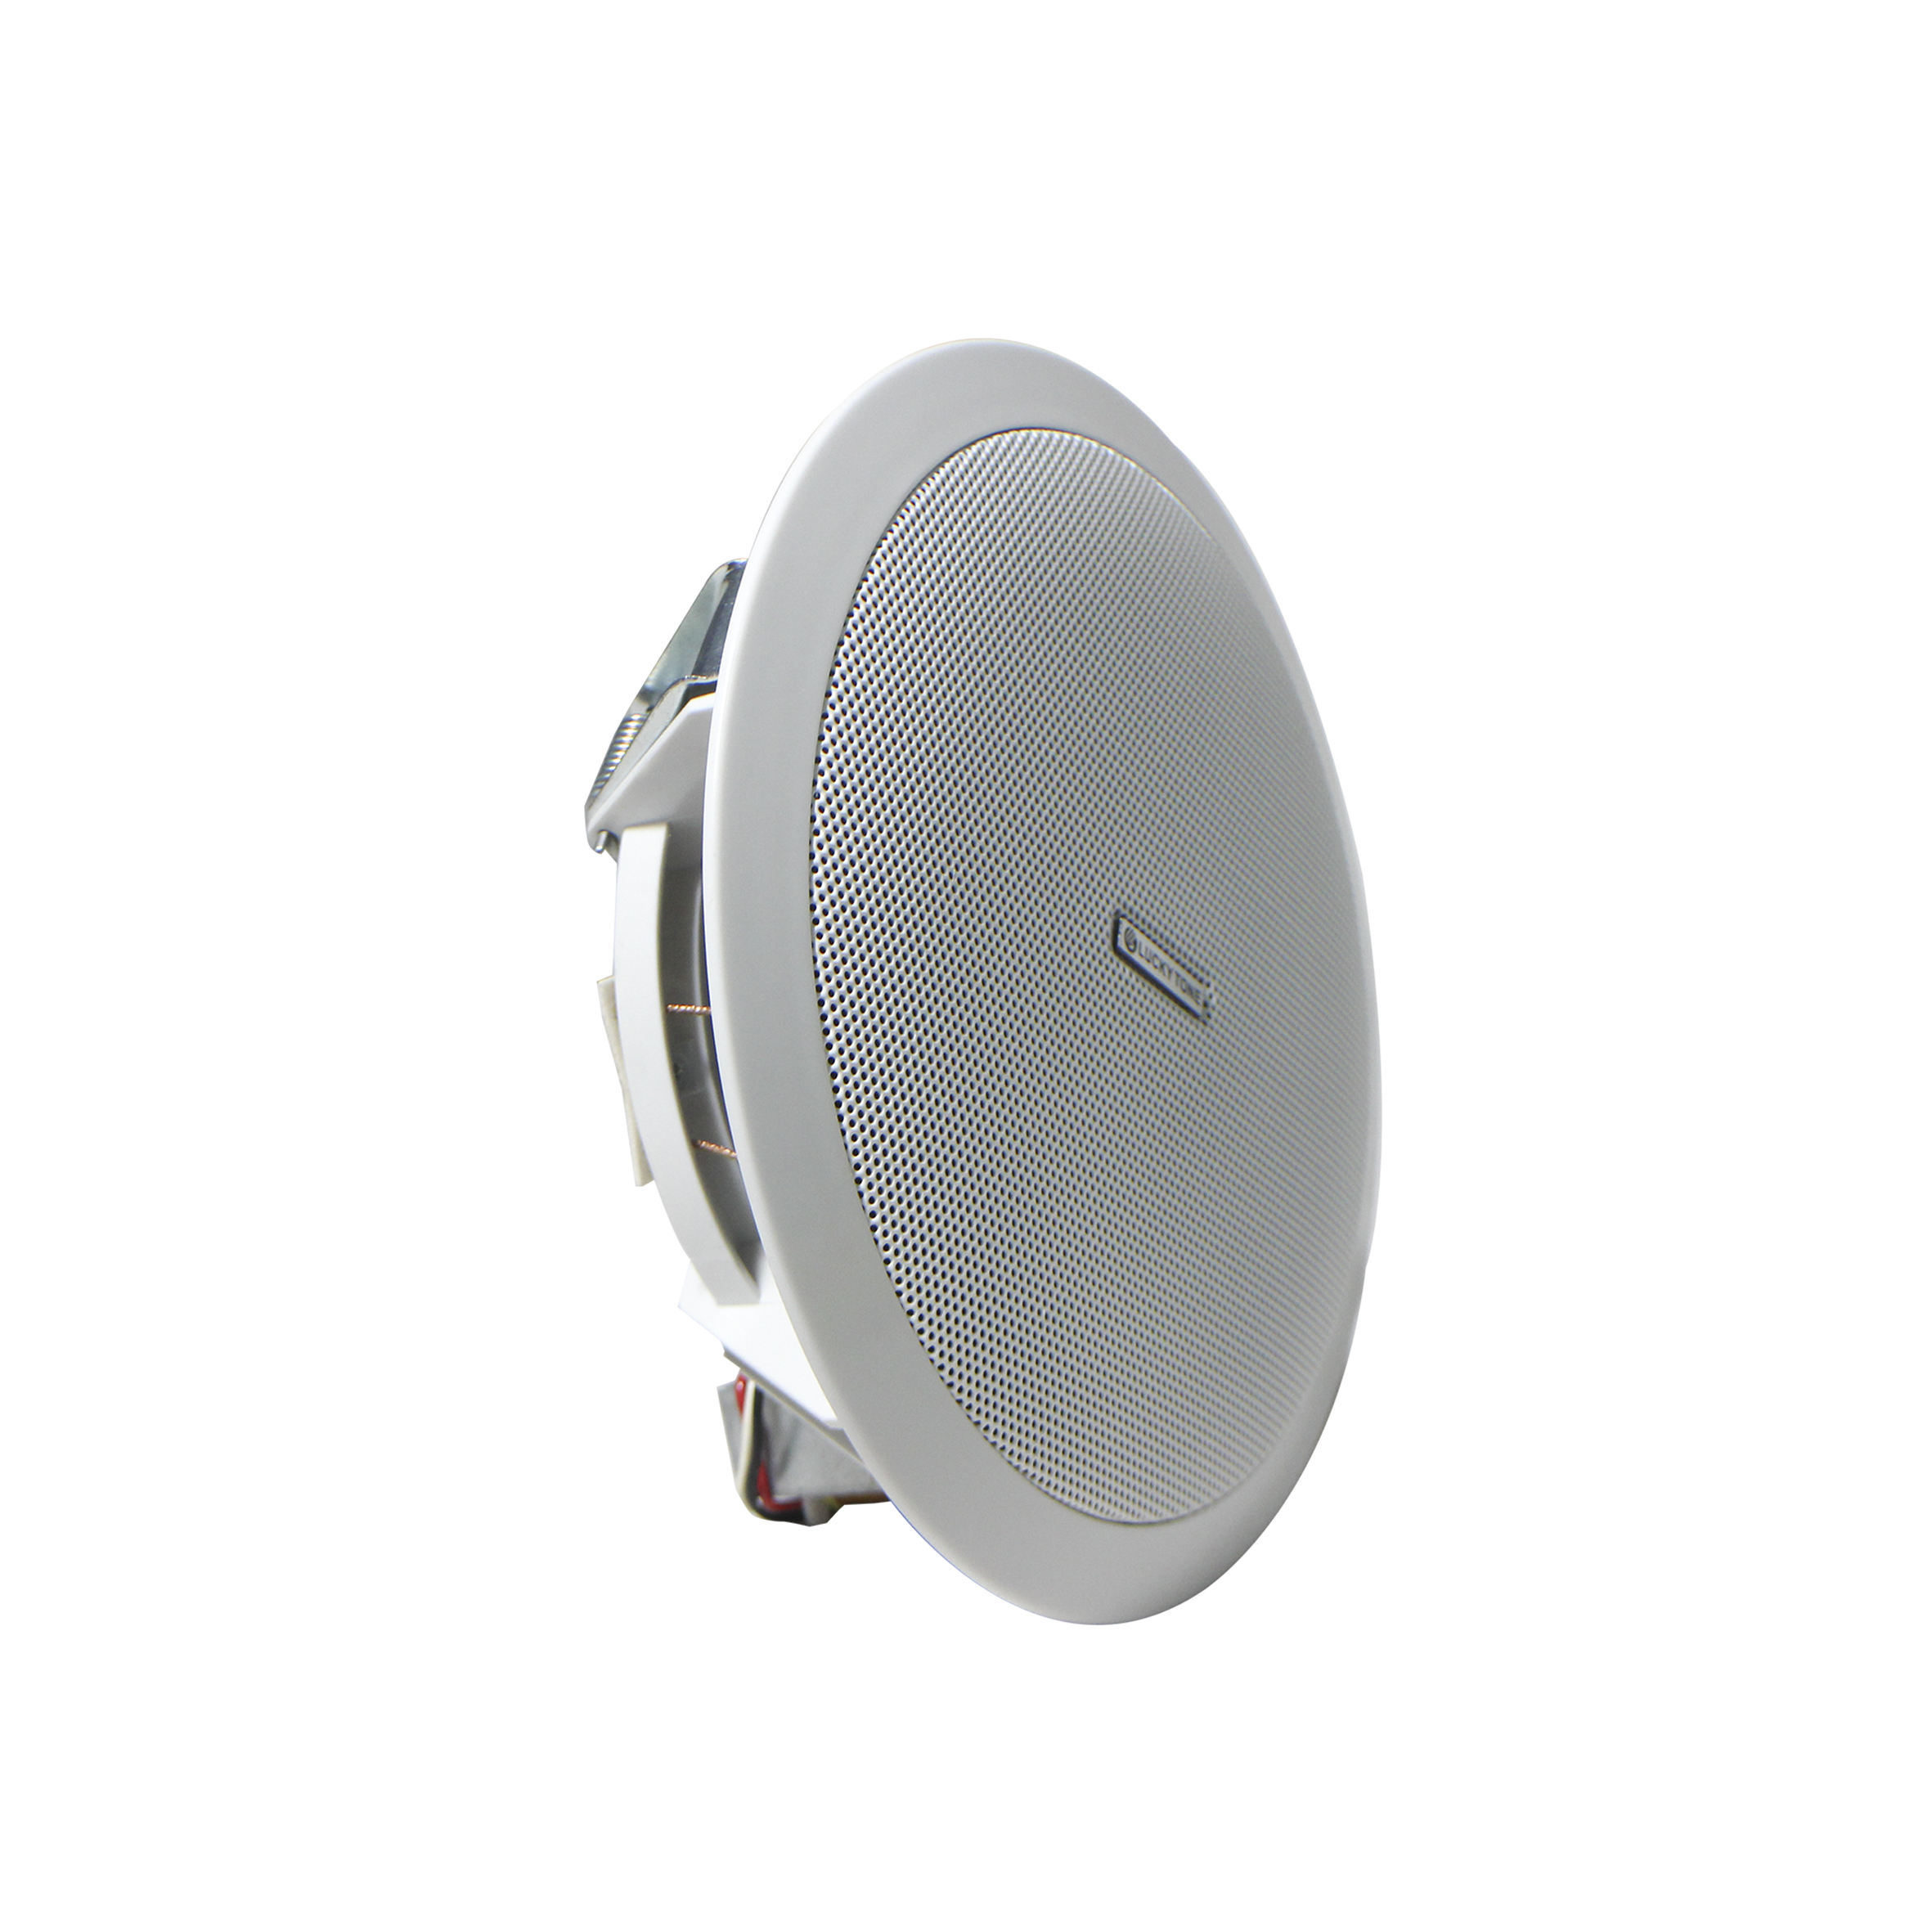 Public address system 100V 10W 8 inch full range ceiling speaker ABS loudspeaker cheap price but good quality sound CP-810